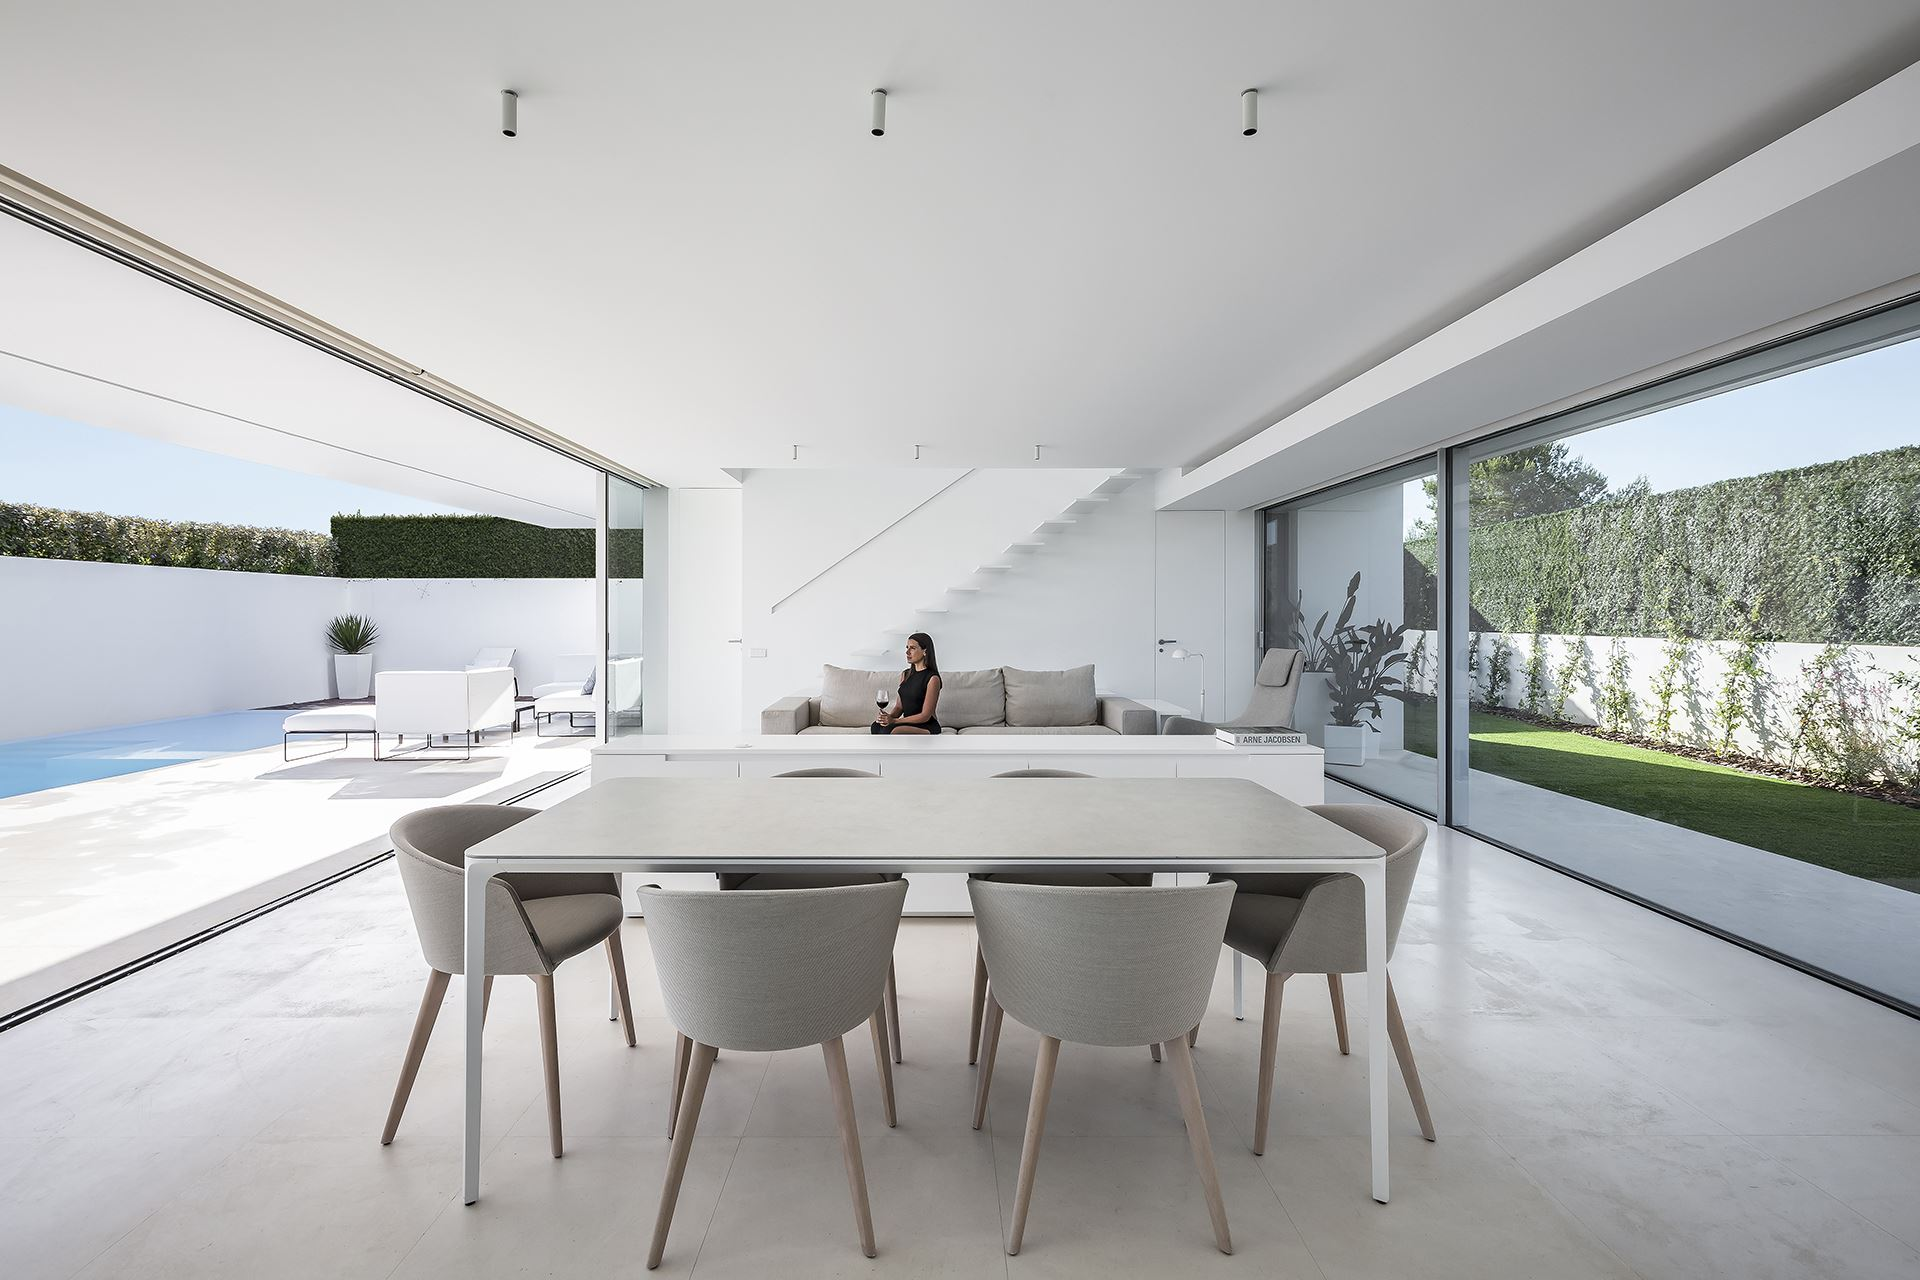 Minimal - Gallardo Llopis Architect